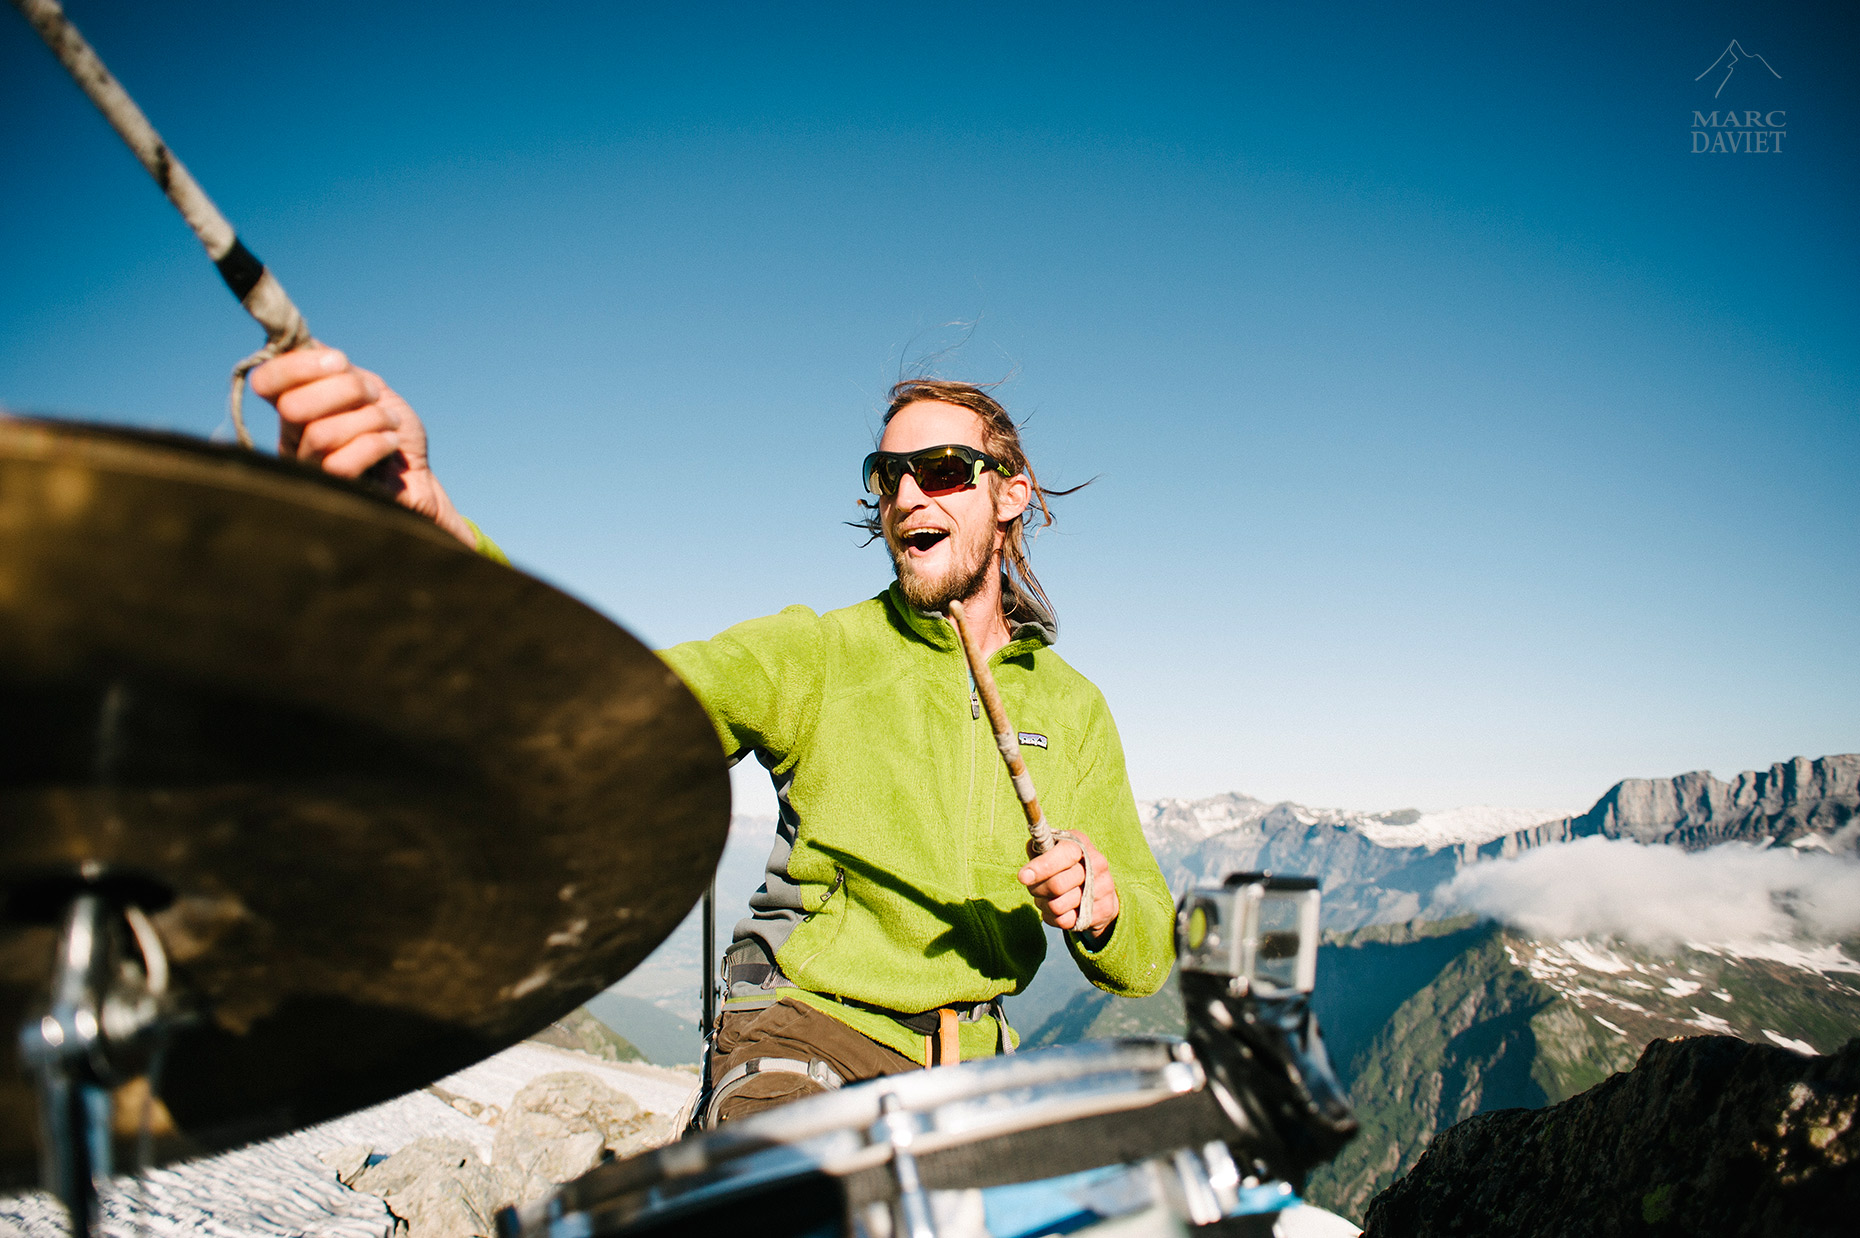 Drums in mountain - Marc Daviet Photography